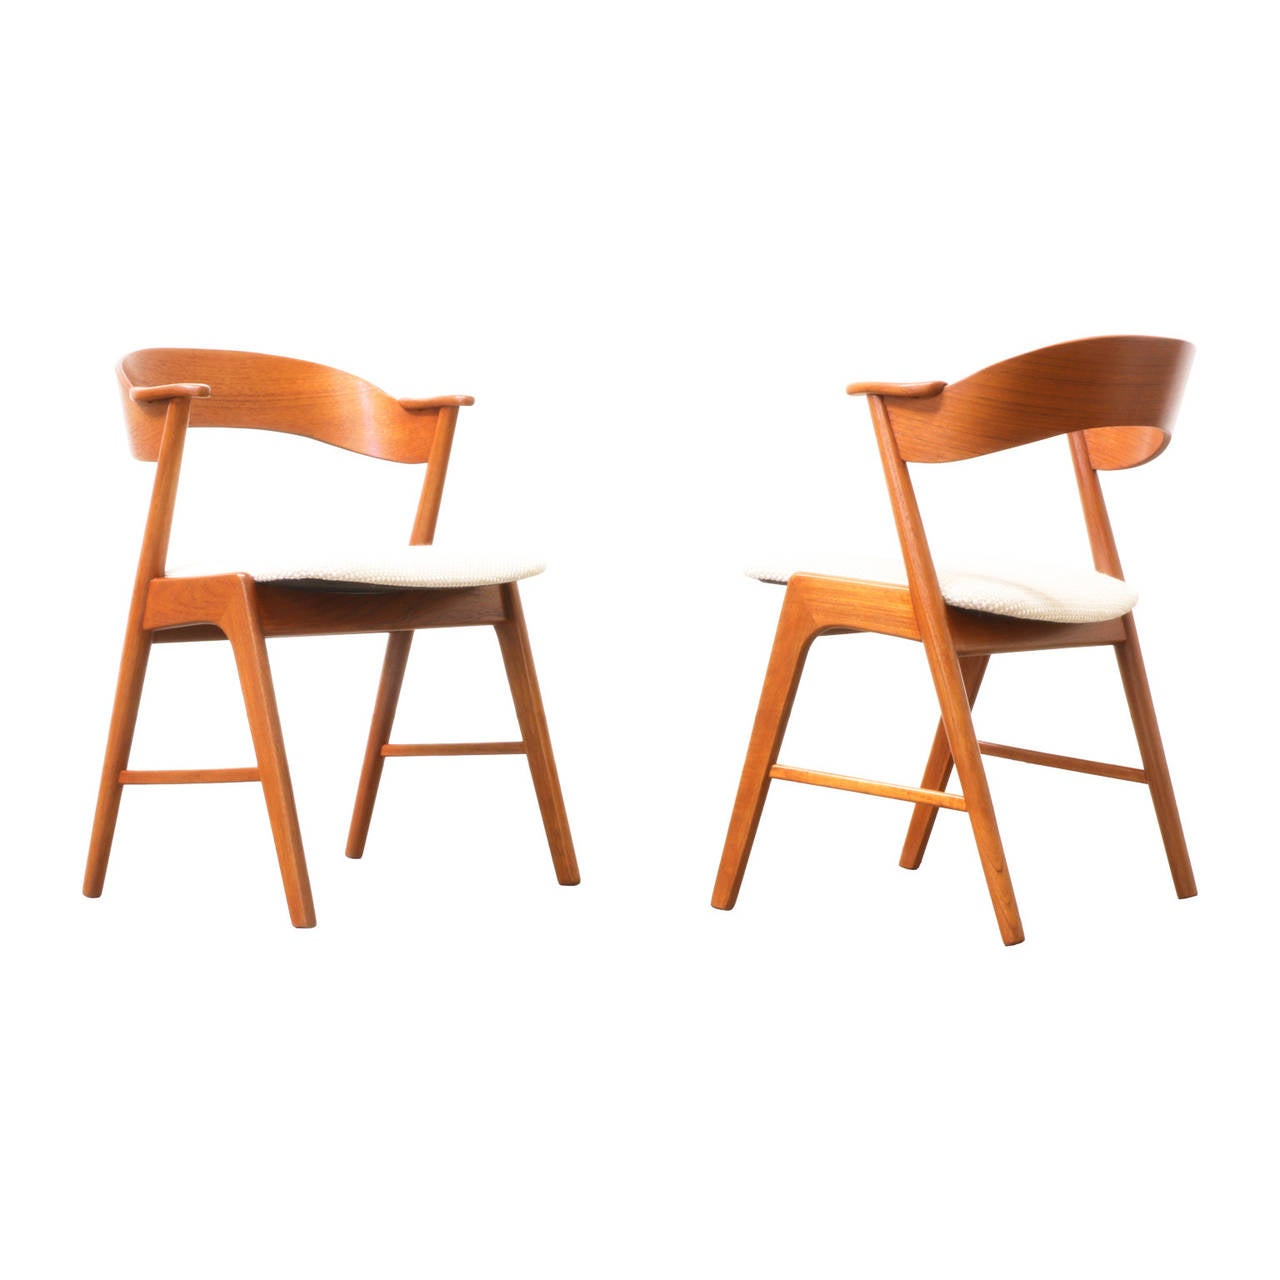 Kai Kristiansen Teak Dining Chairs By Korup Stolefabrik At 1stdibs